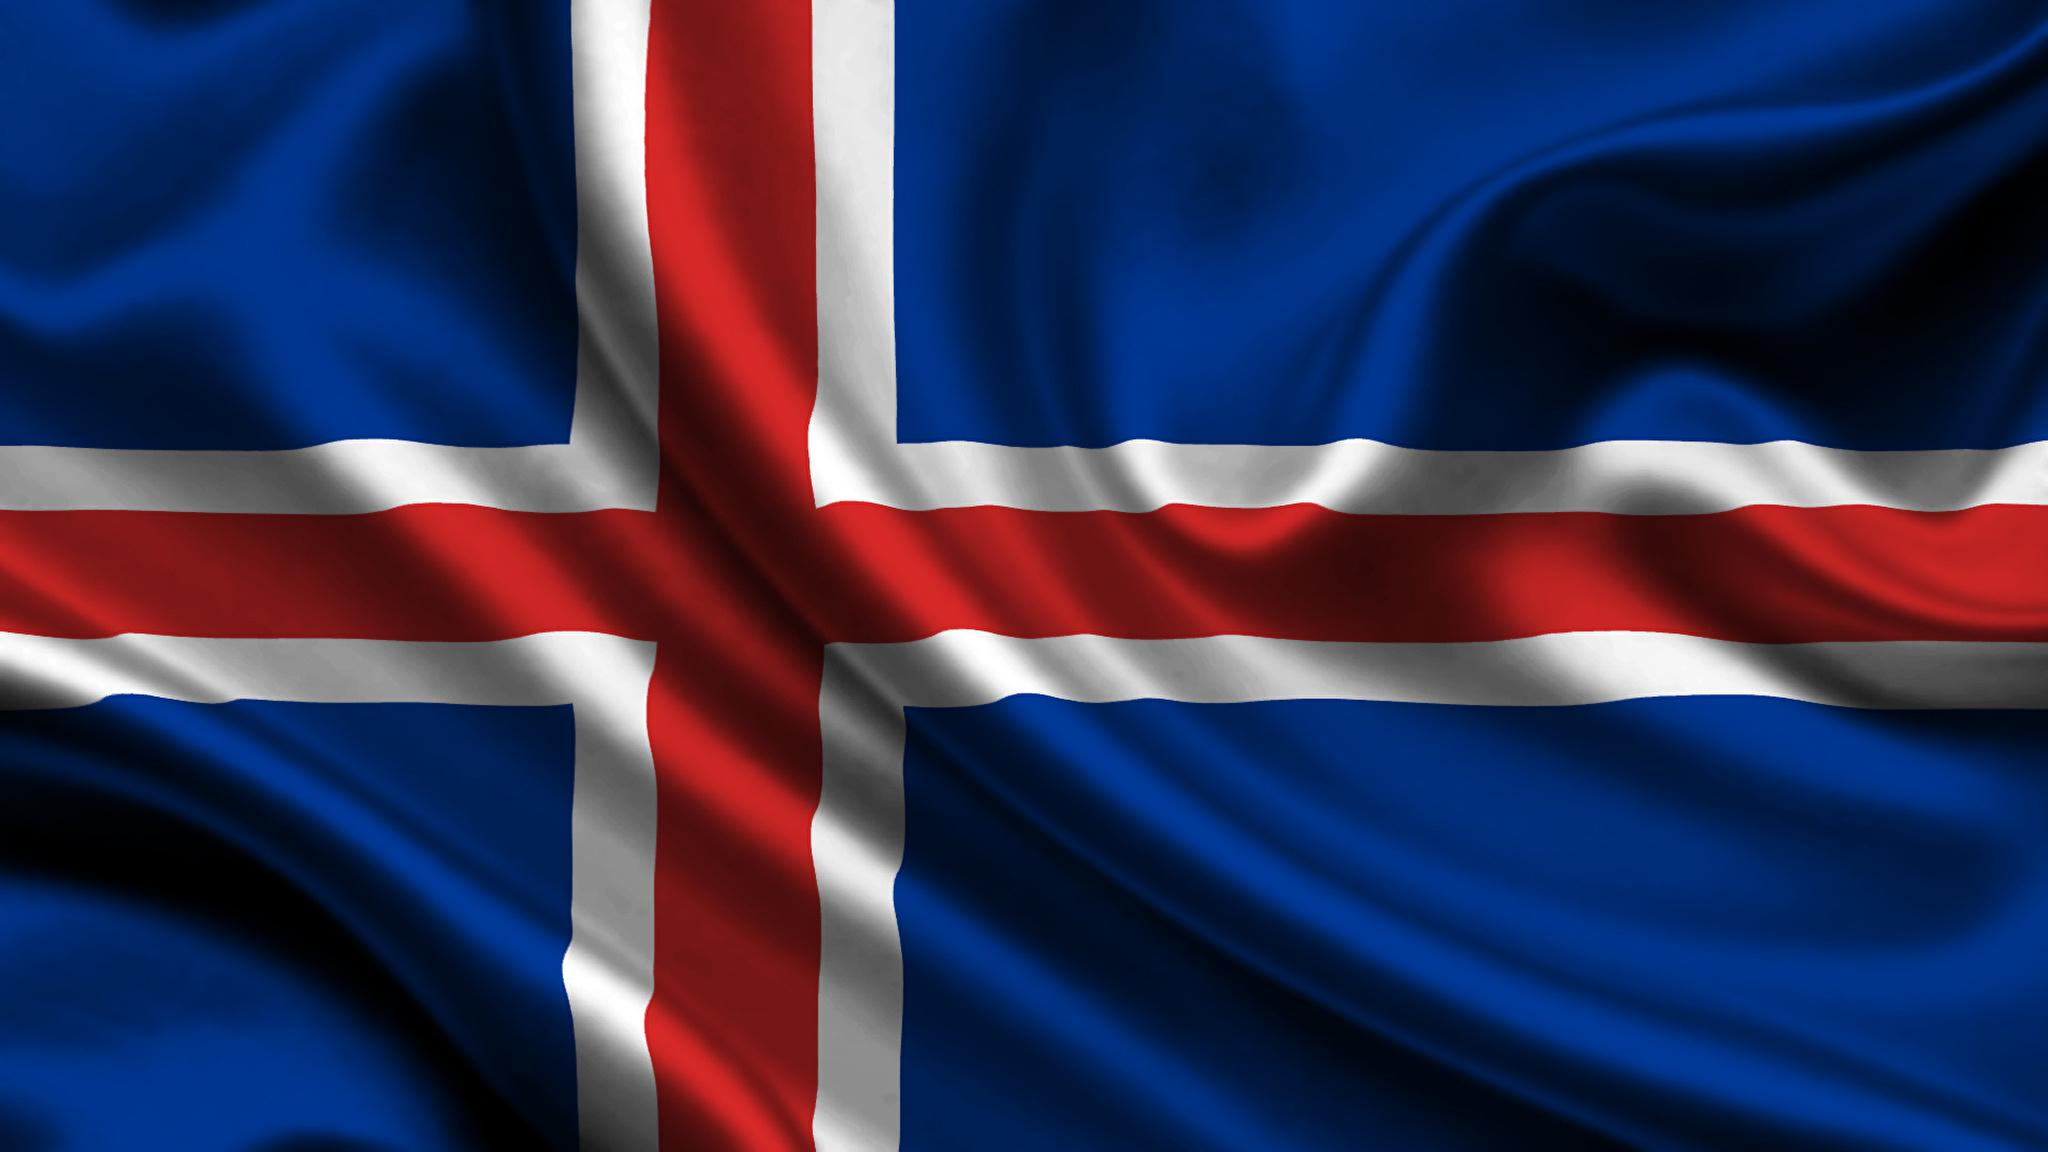 Wallpapers Iceland Flag Cross 2048x1152